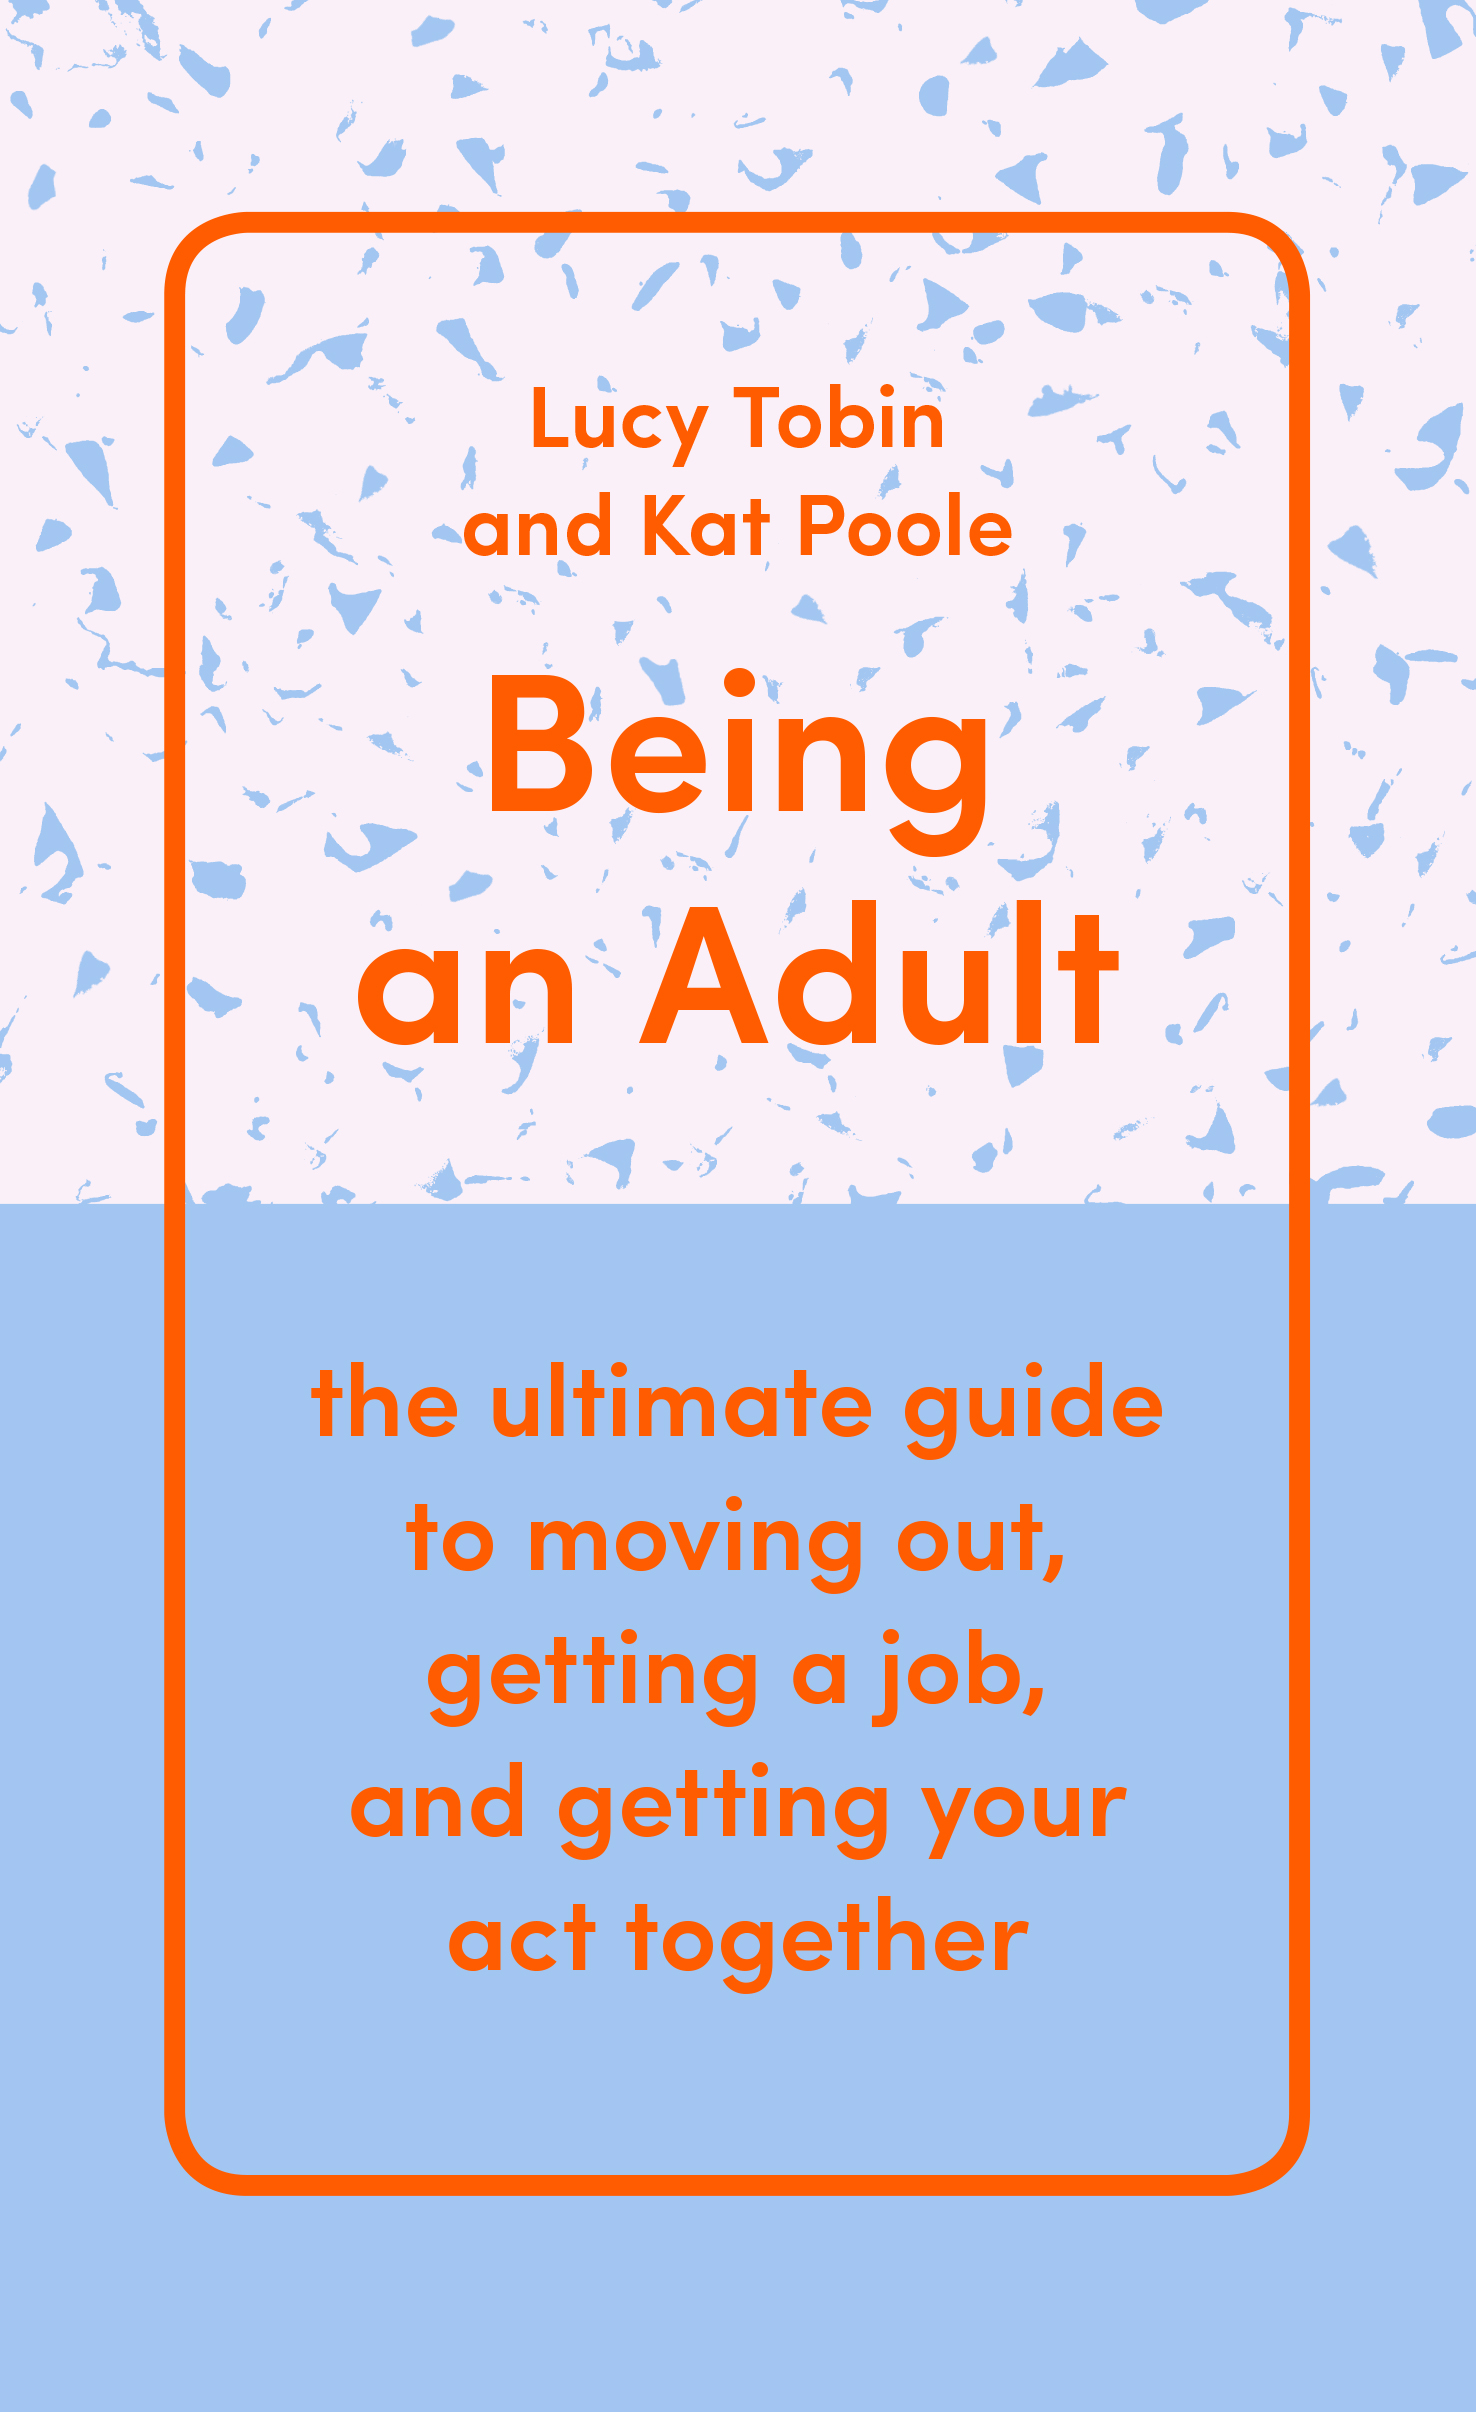 Download Ebook Being an Adult by Lucy Tobin Pdf